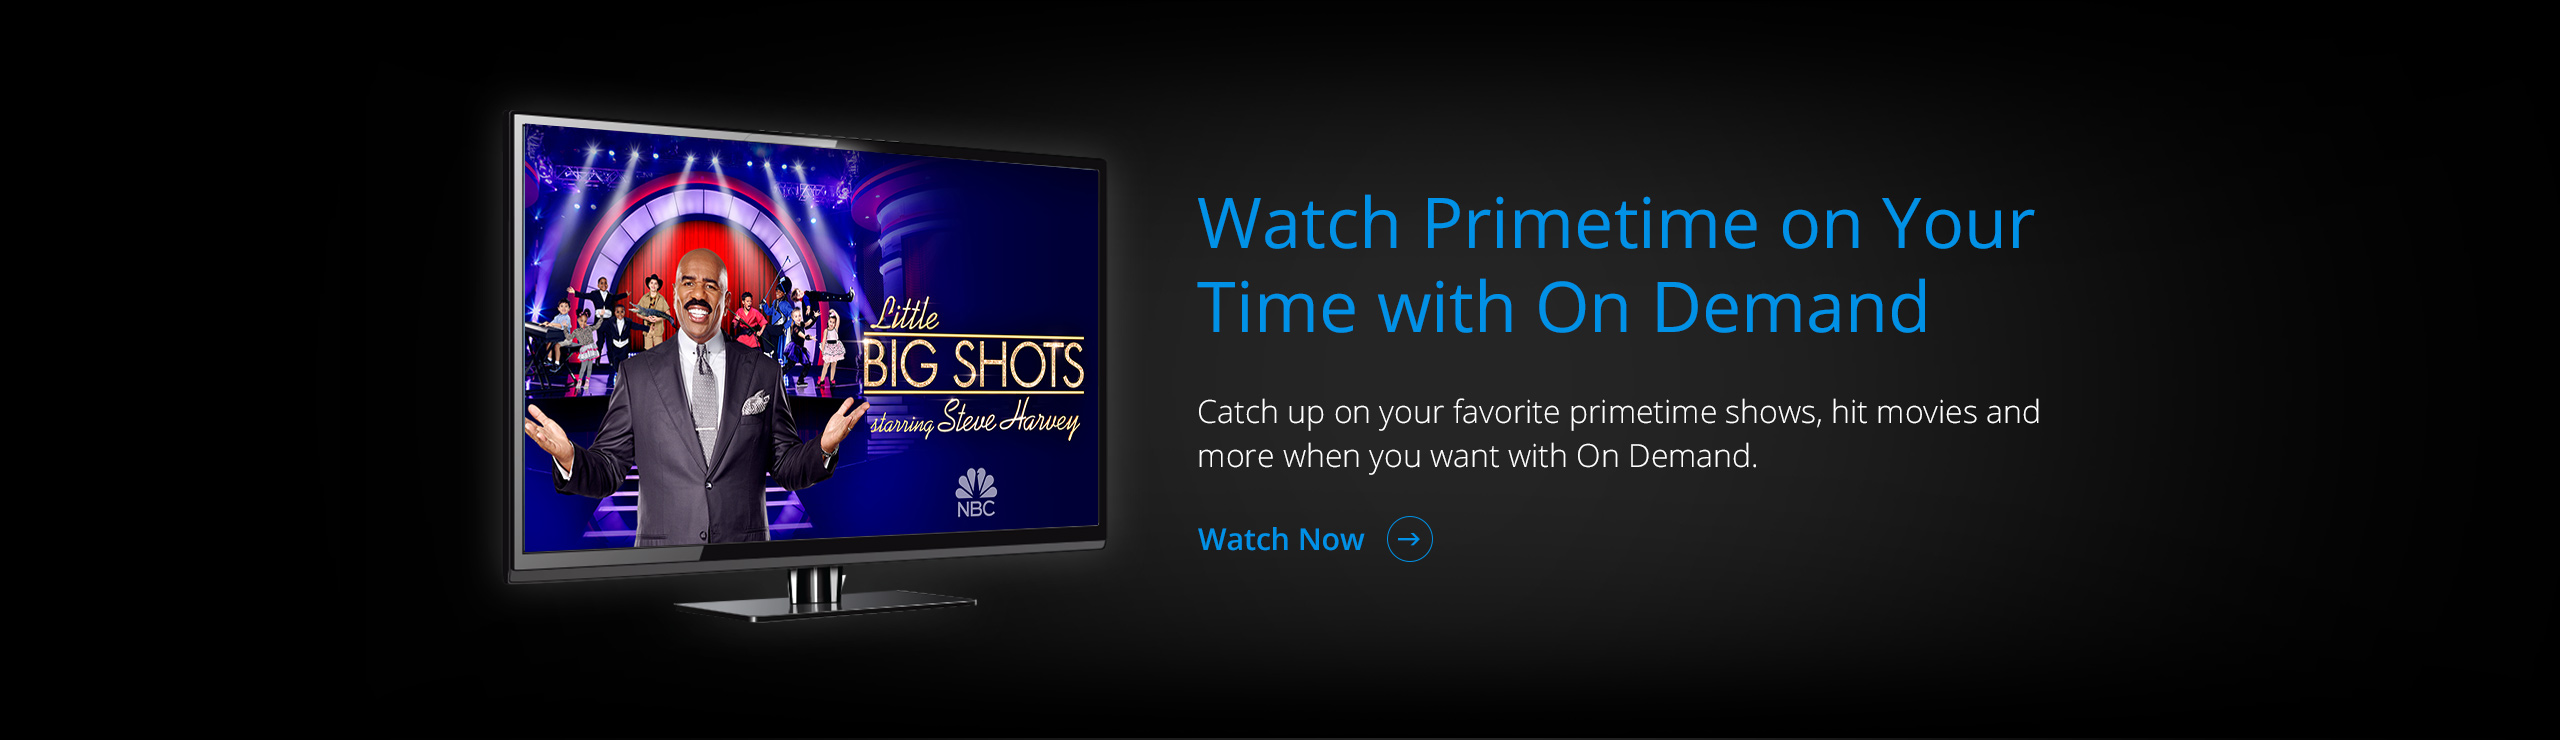 Primetime On Demand